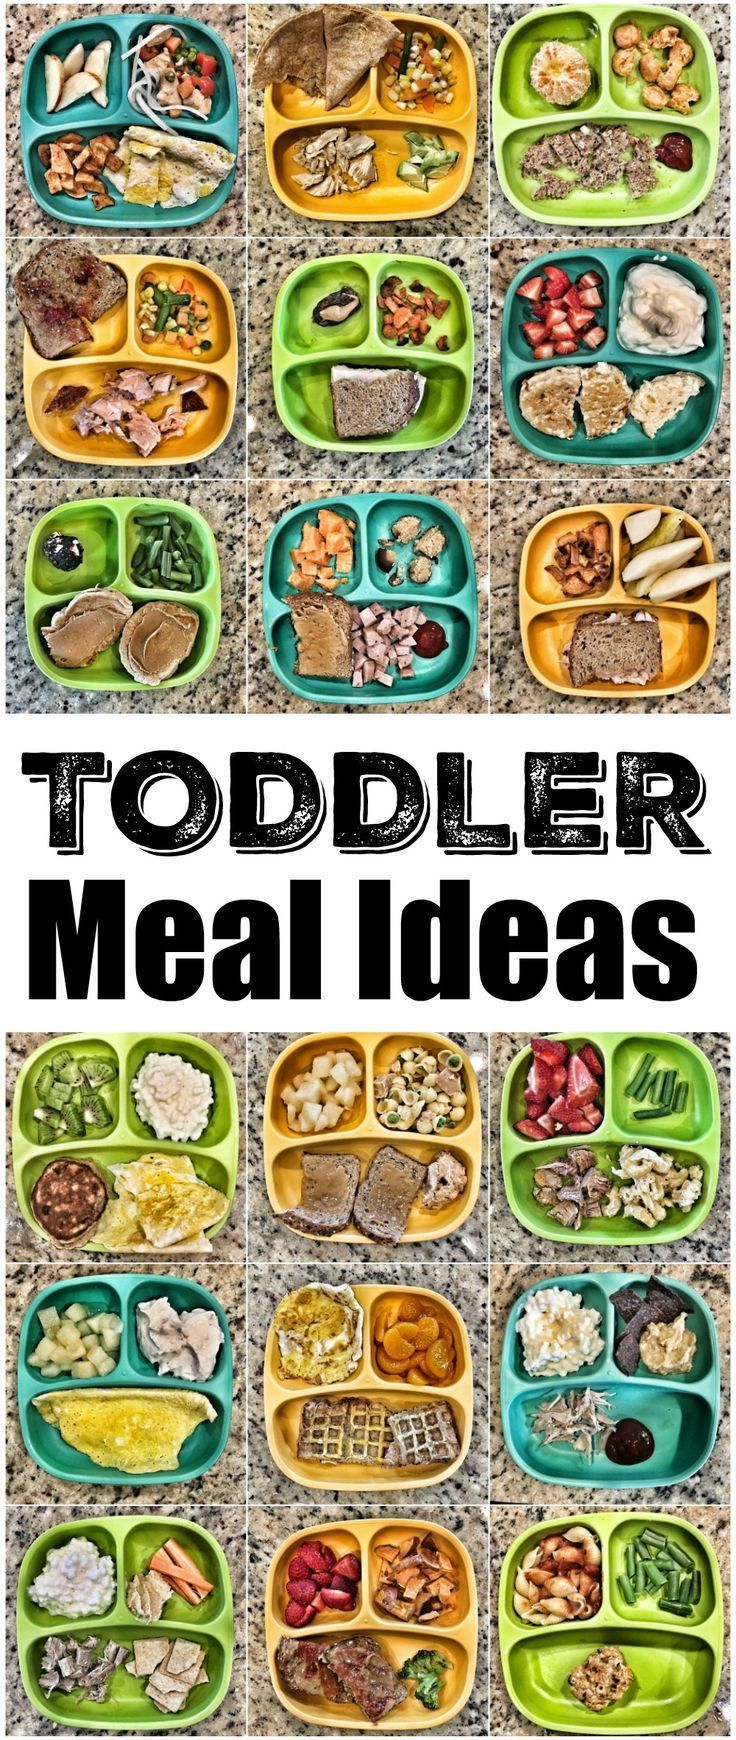 50+ quick toddler meal ideas healthy kids recipes images